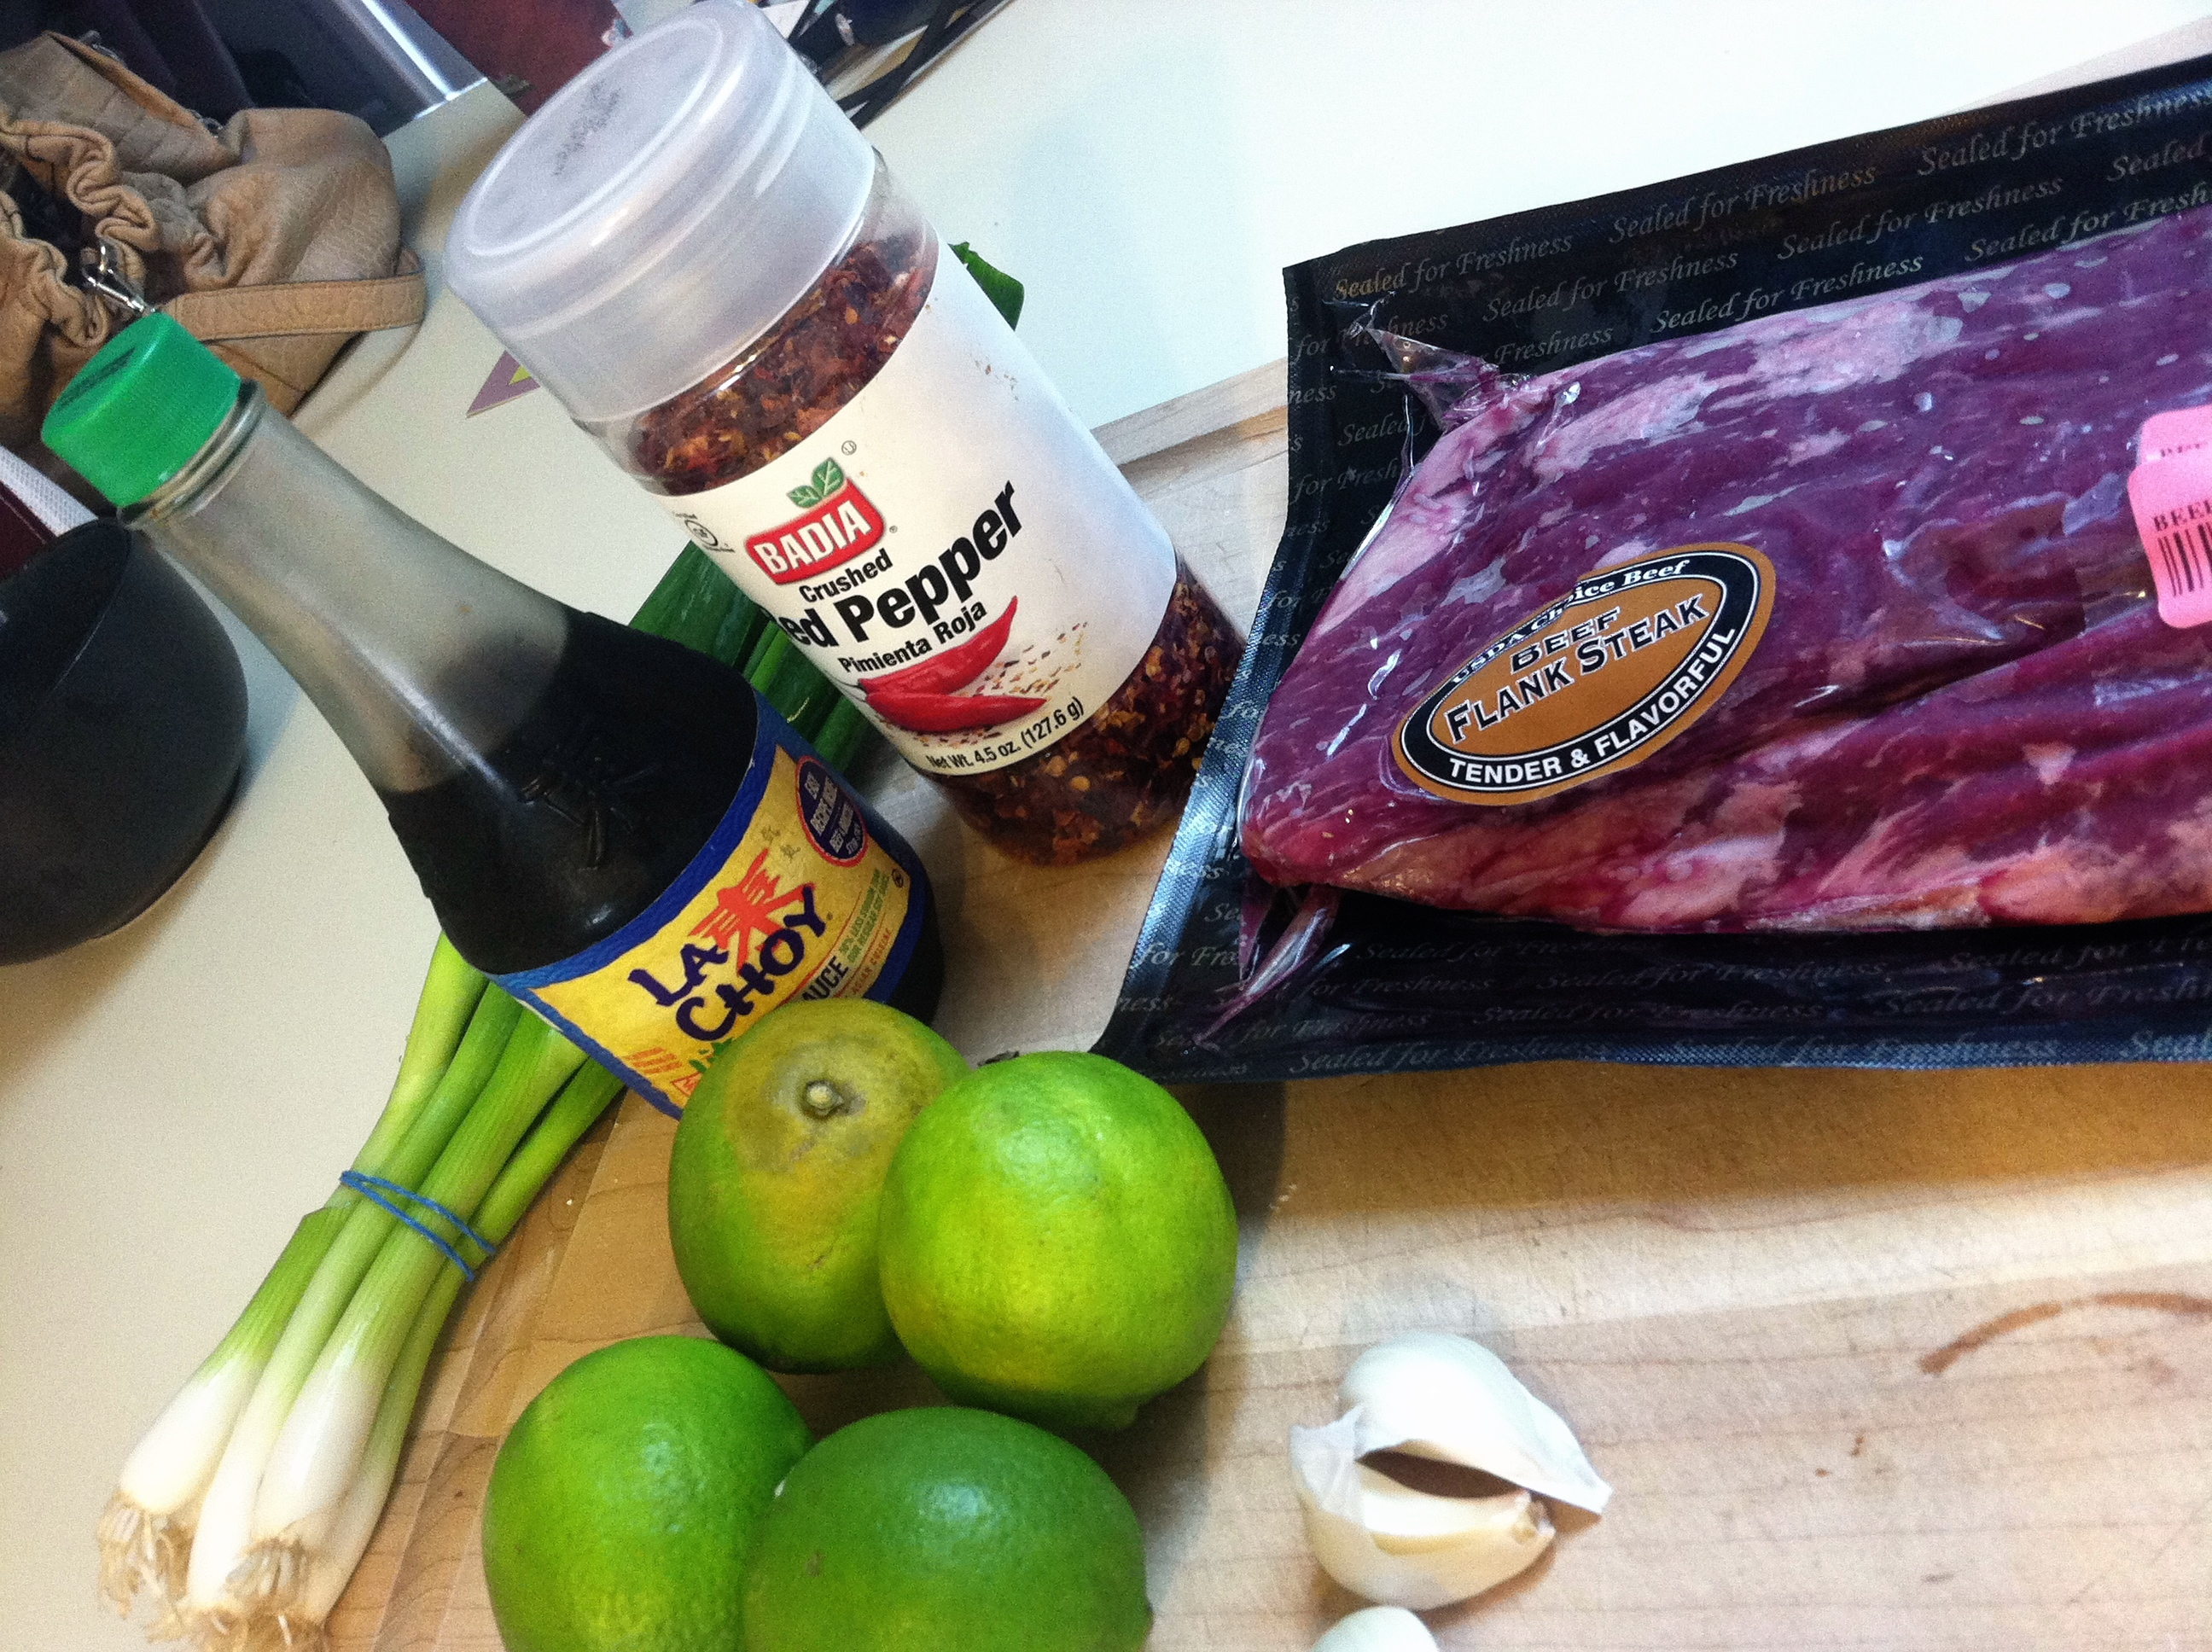 Flank steak marinade ingredients